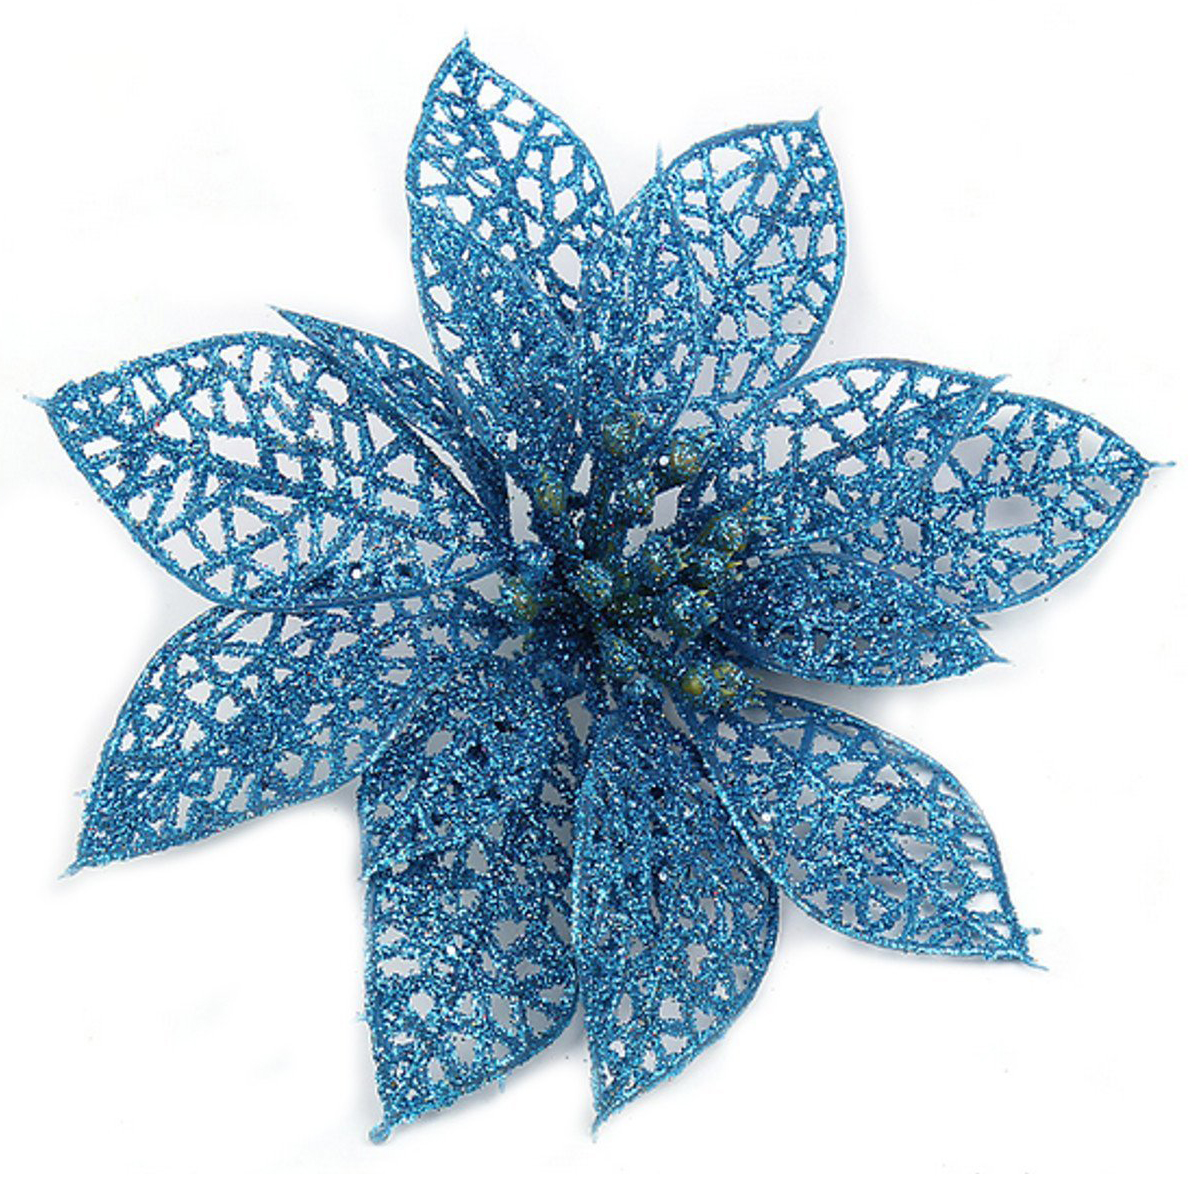 SDFC-Decoration for Christmas Tree - elegant 13cm Sequin Flowers Suspended with Christmas tree - indispensable decorations de